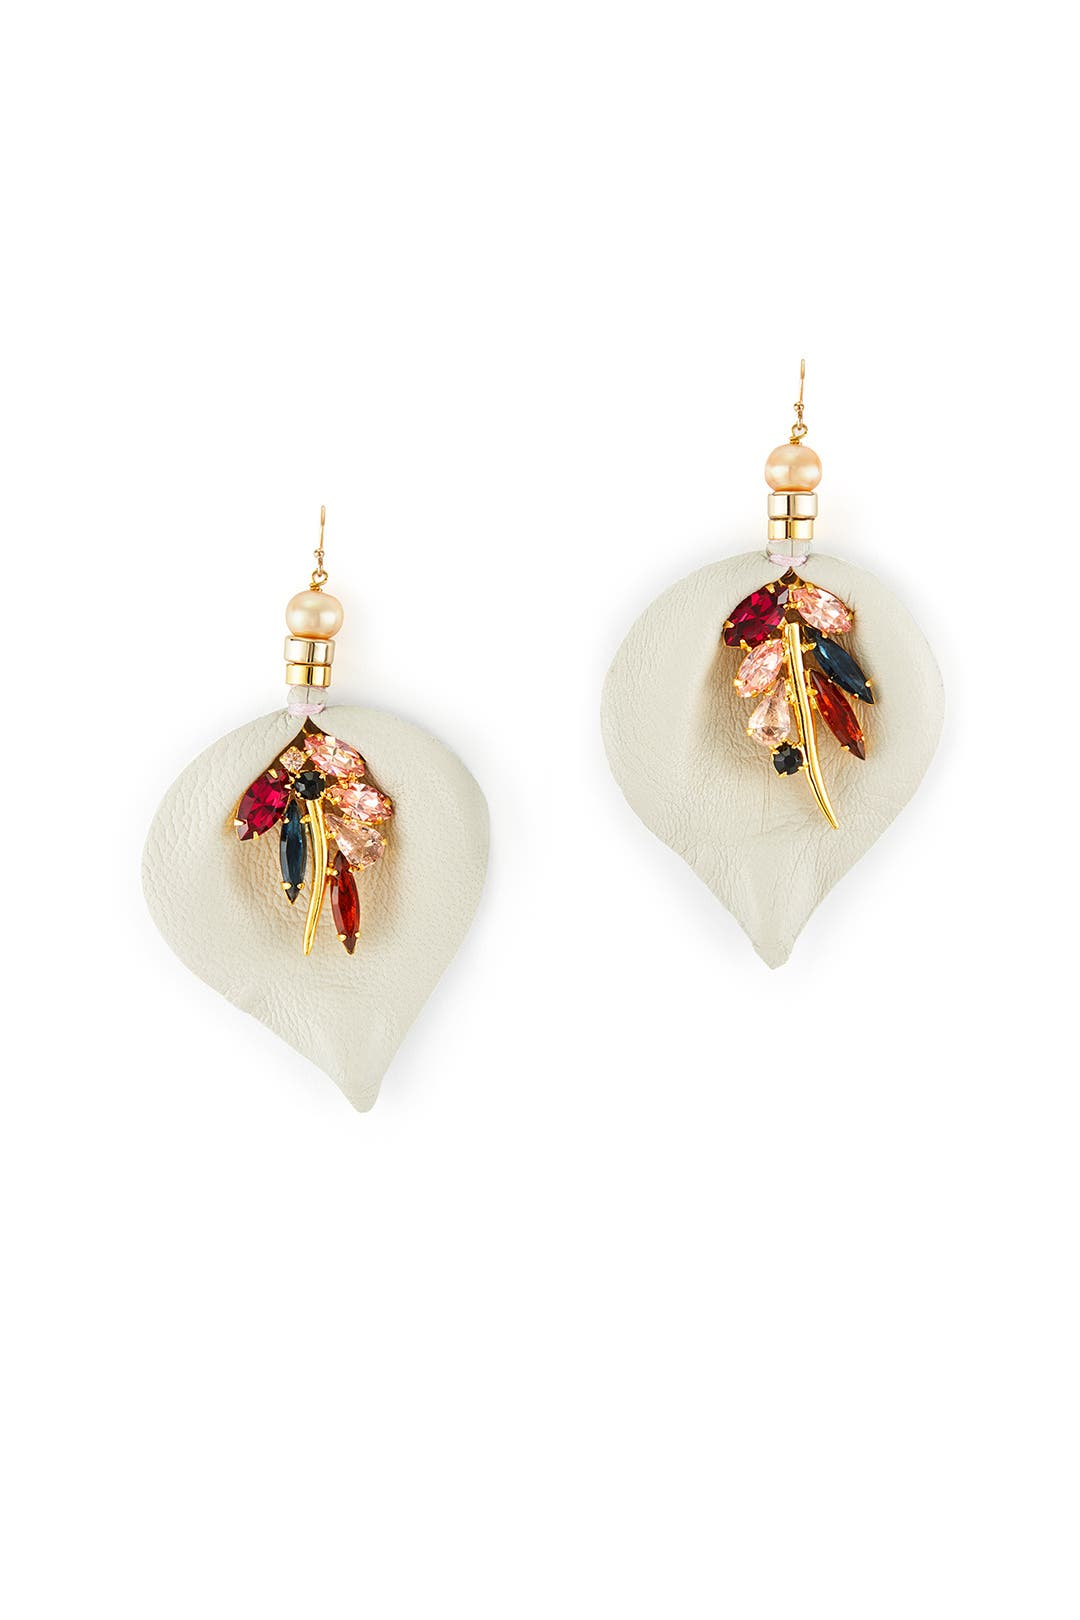 First Hot Summer Night Earrings by Lizzie Fortunato